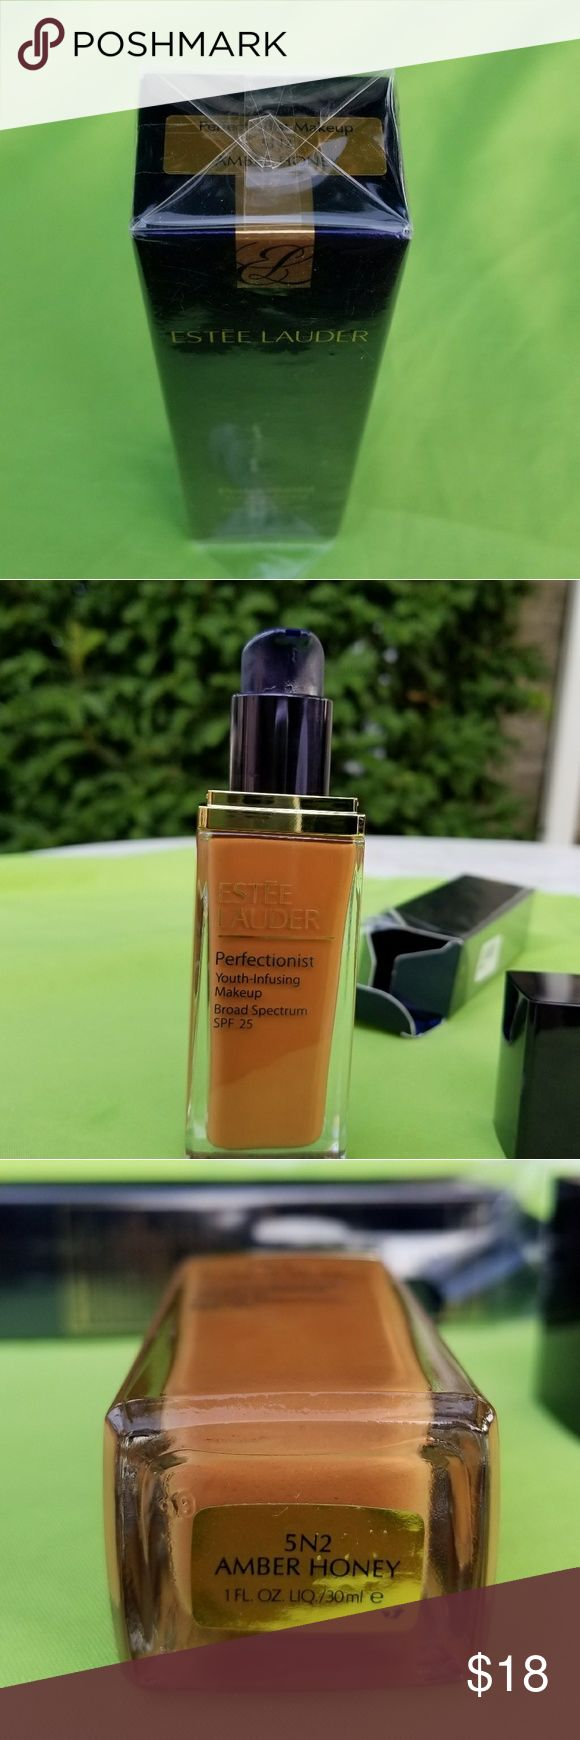 Estee lauder perfectionist youth-infusion makeup. New.                                                                                                        Estee lauder perfectionist youth-infusion makeup, broad espectrum SPF 25.   Shade : AMBER HONEY. Estee Lauder Makeup Foundation